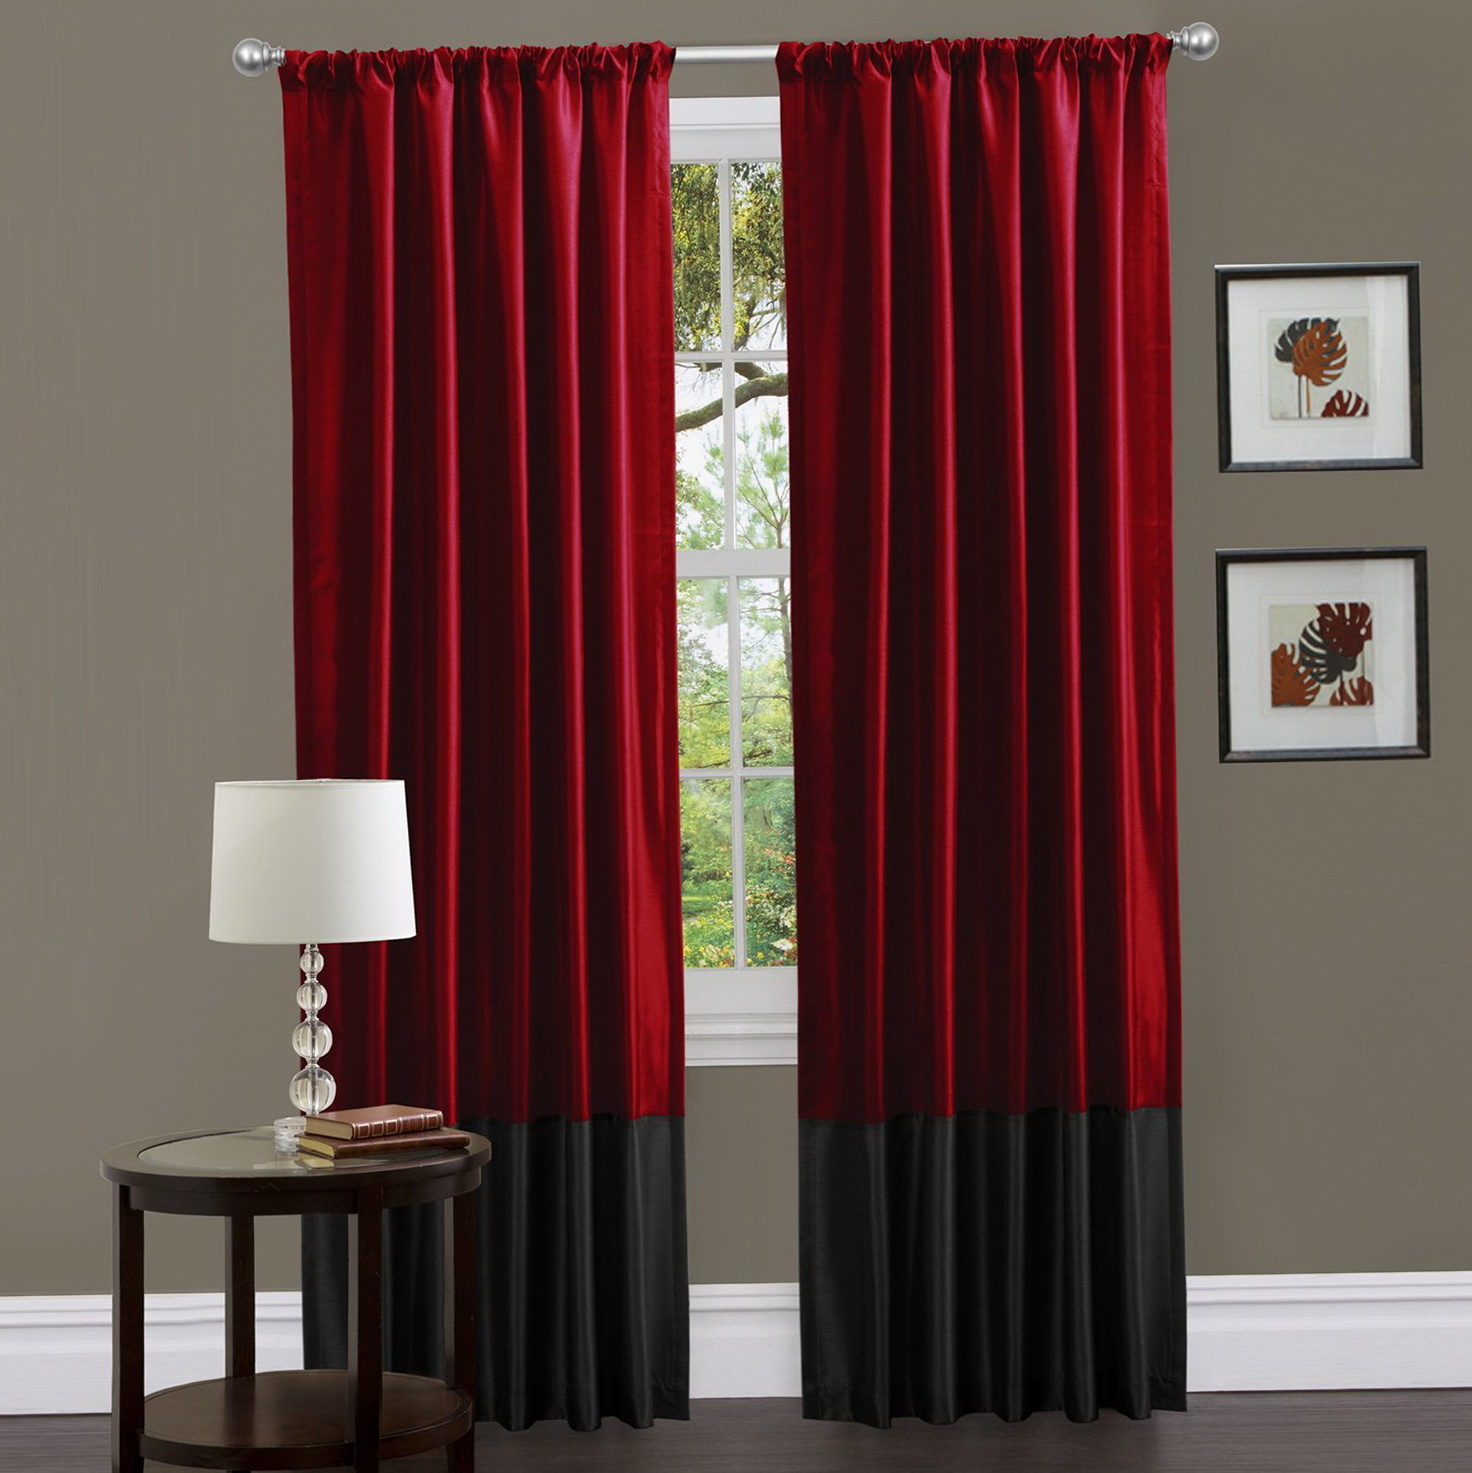 red black and white window curtains home design ideas. Black Bedroom Furniture Sets. Home Design Ideas